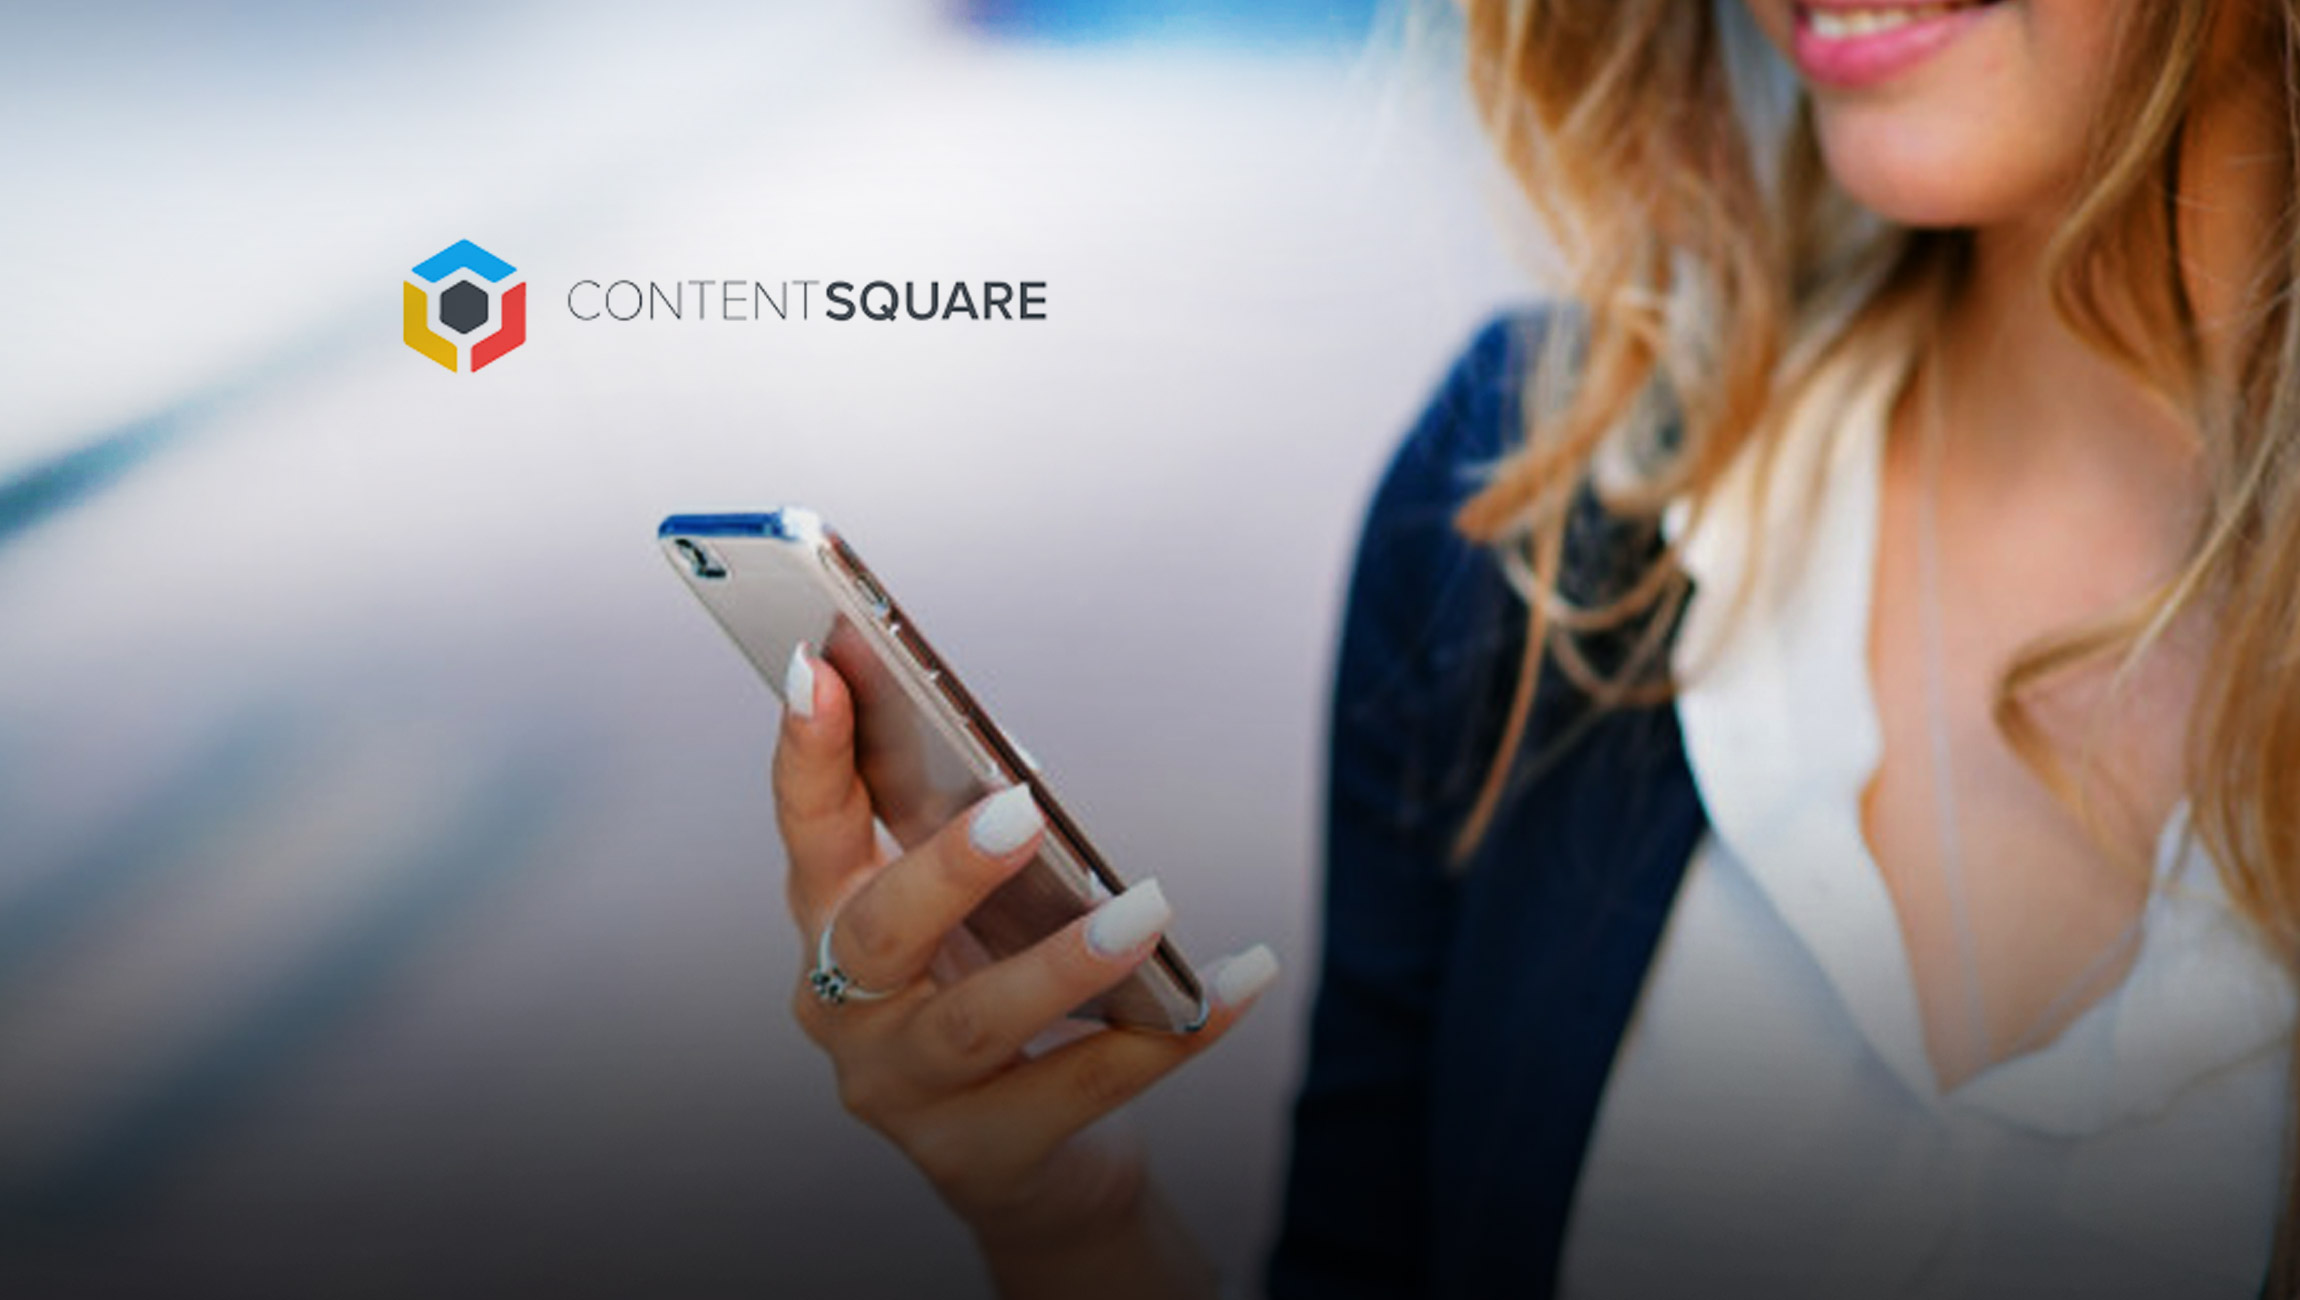 Contentsquare Acquires AMW to Accelerate Accessibility to Digital Content Worldwide